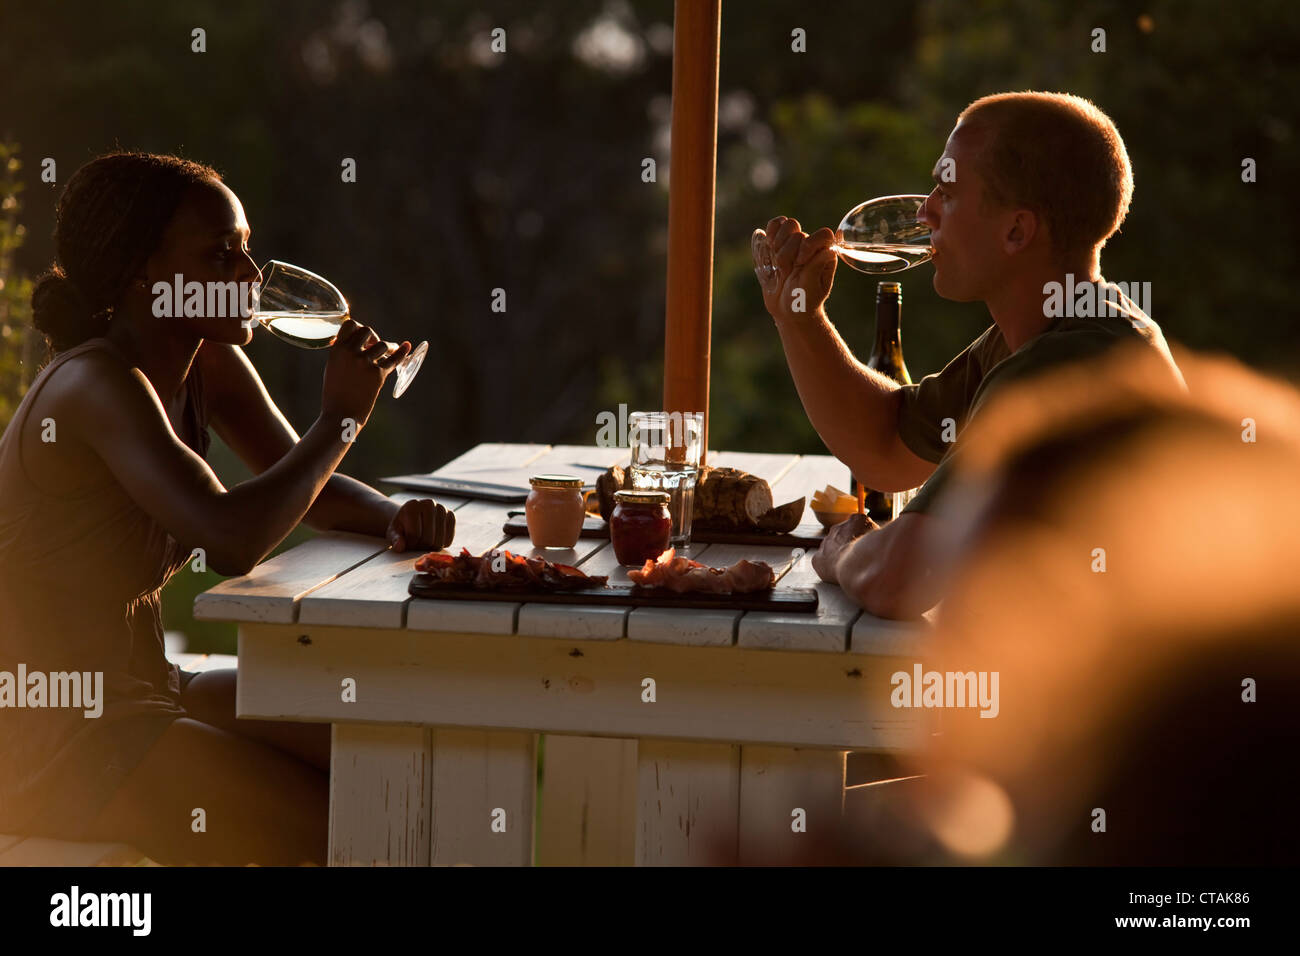 Restaurant Roundhouse, Camps Bay, Cape Town, Western Cape, South Africa, RSA, Africa - Stock Image